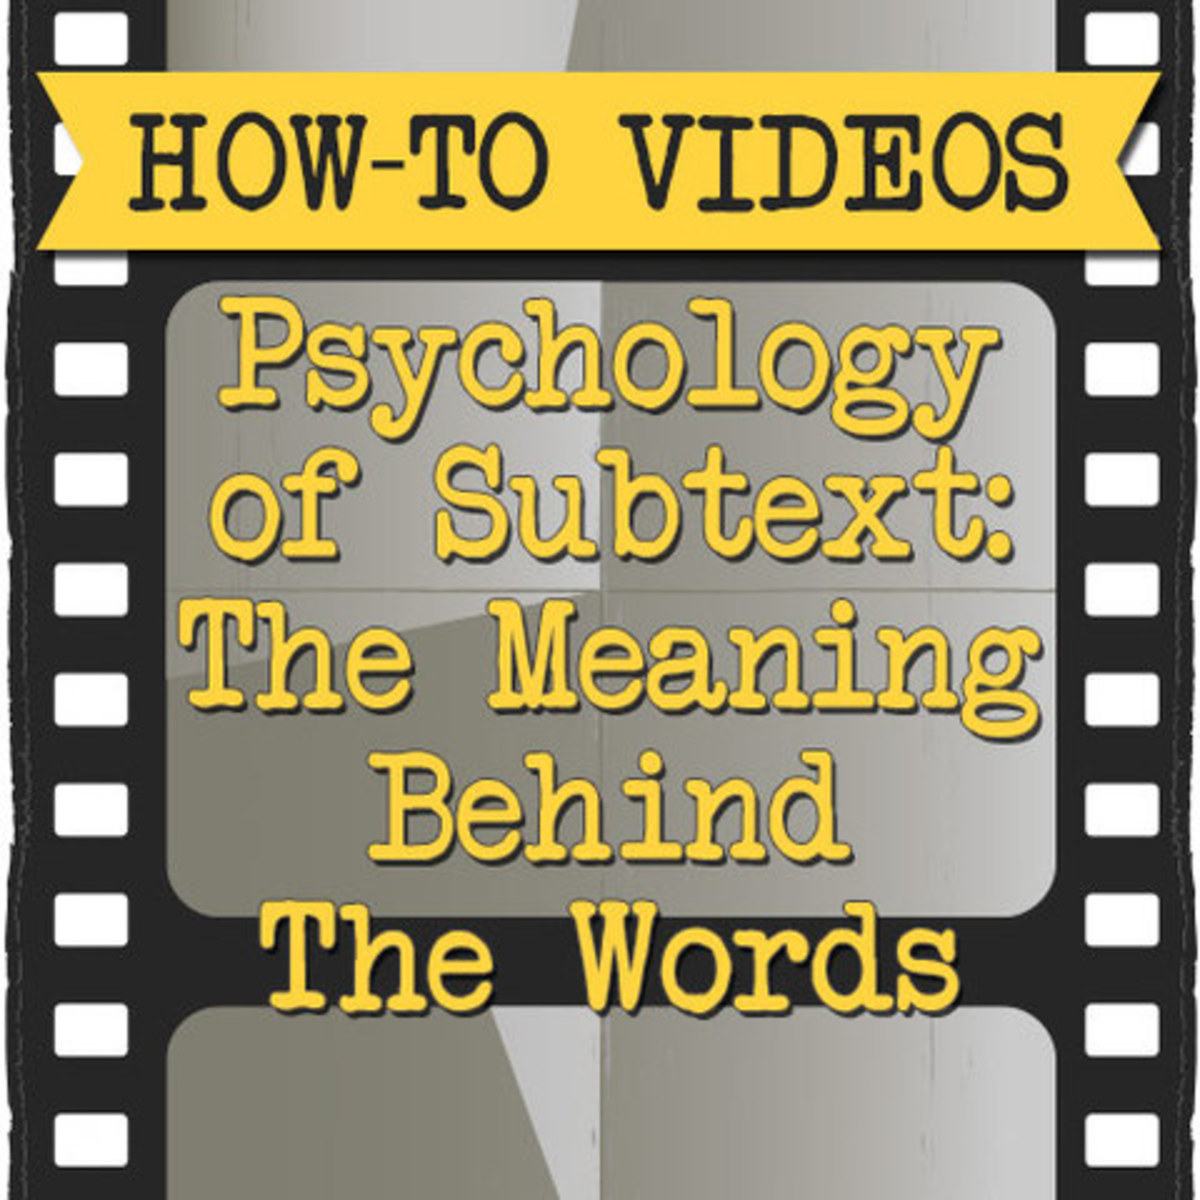 ws_howtovideos-500-psychology subtext_medium